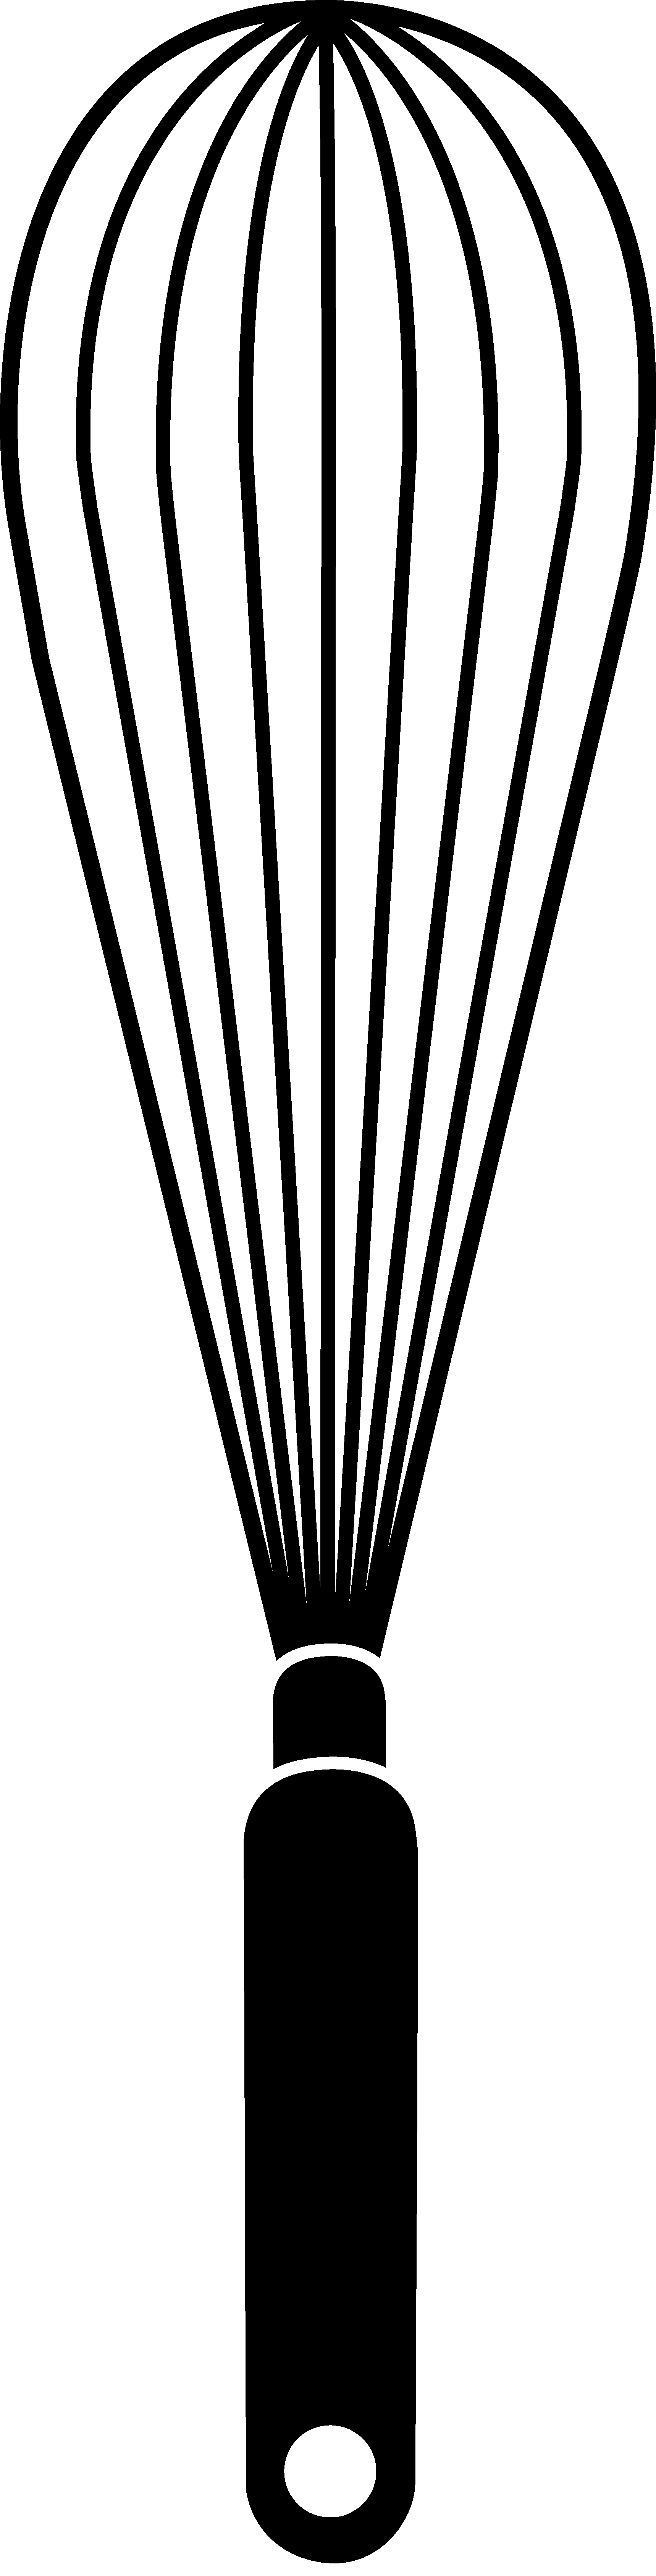 1718x6746 Whisk Silhouette